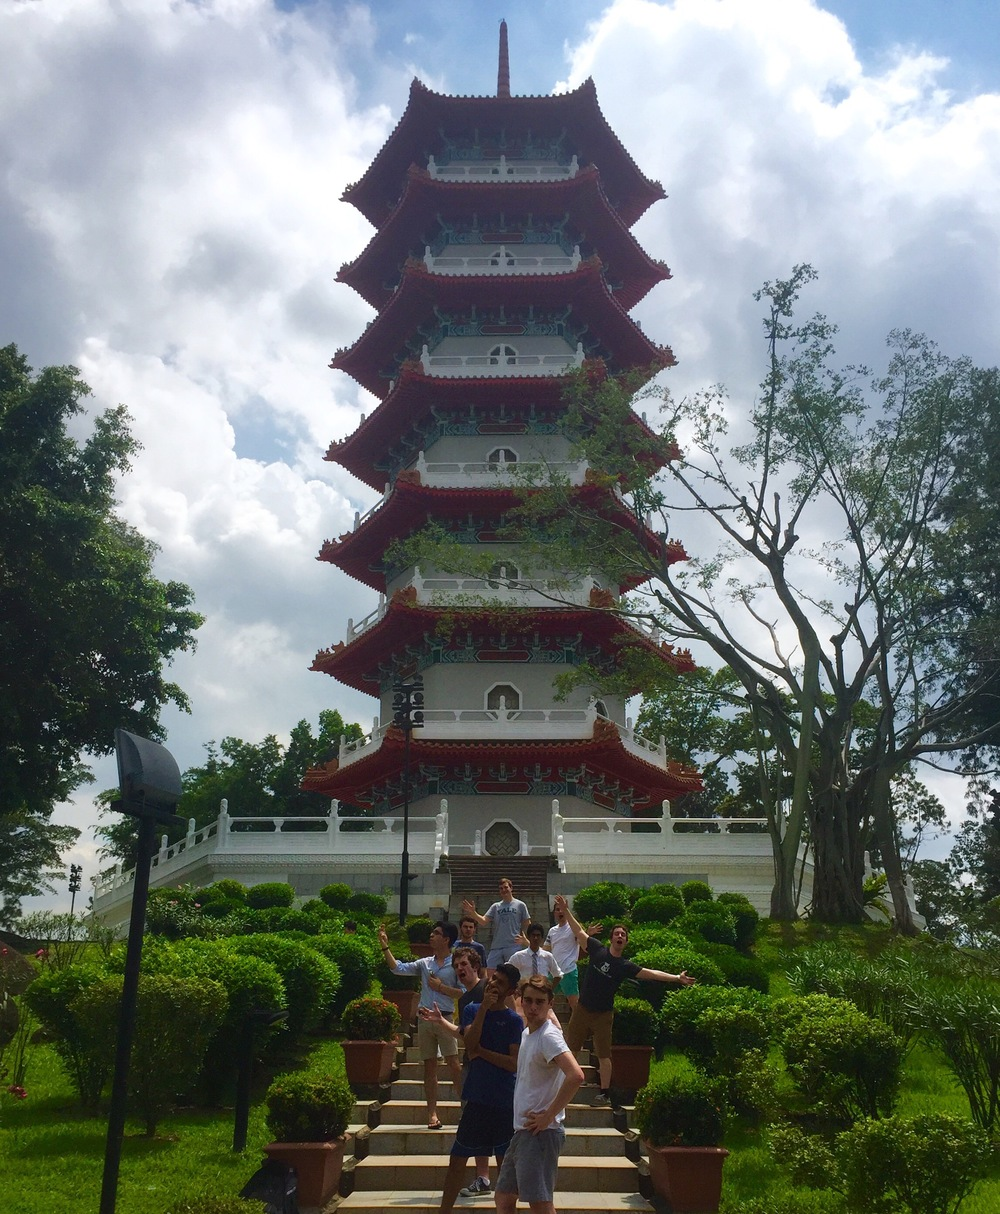 Cats Climb Pagodas: Part I